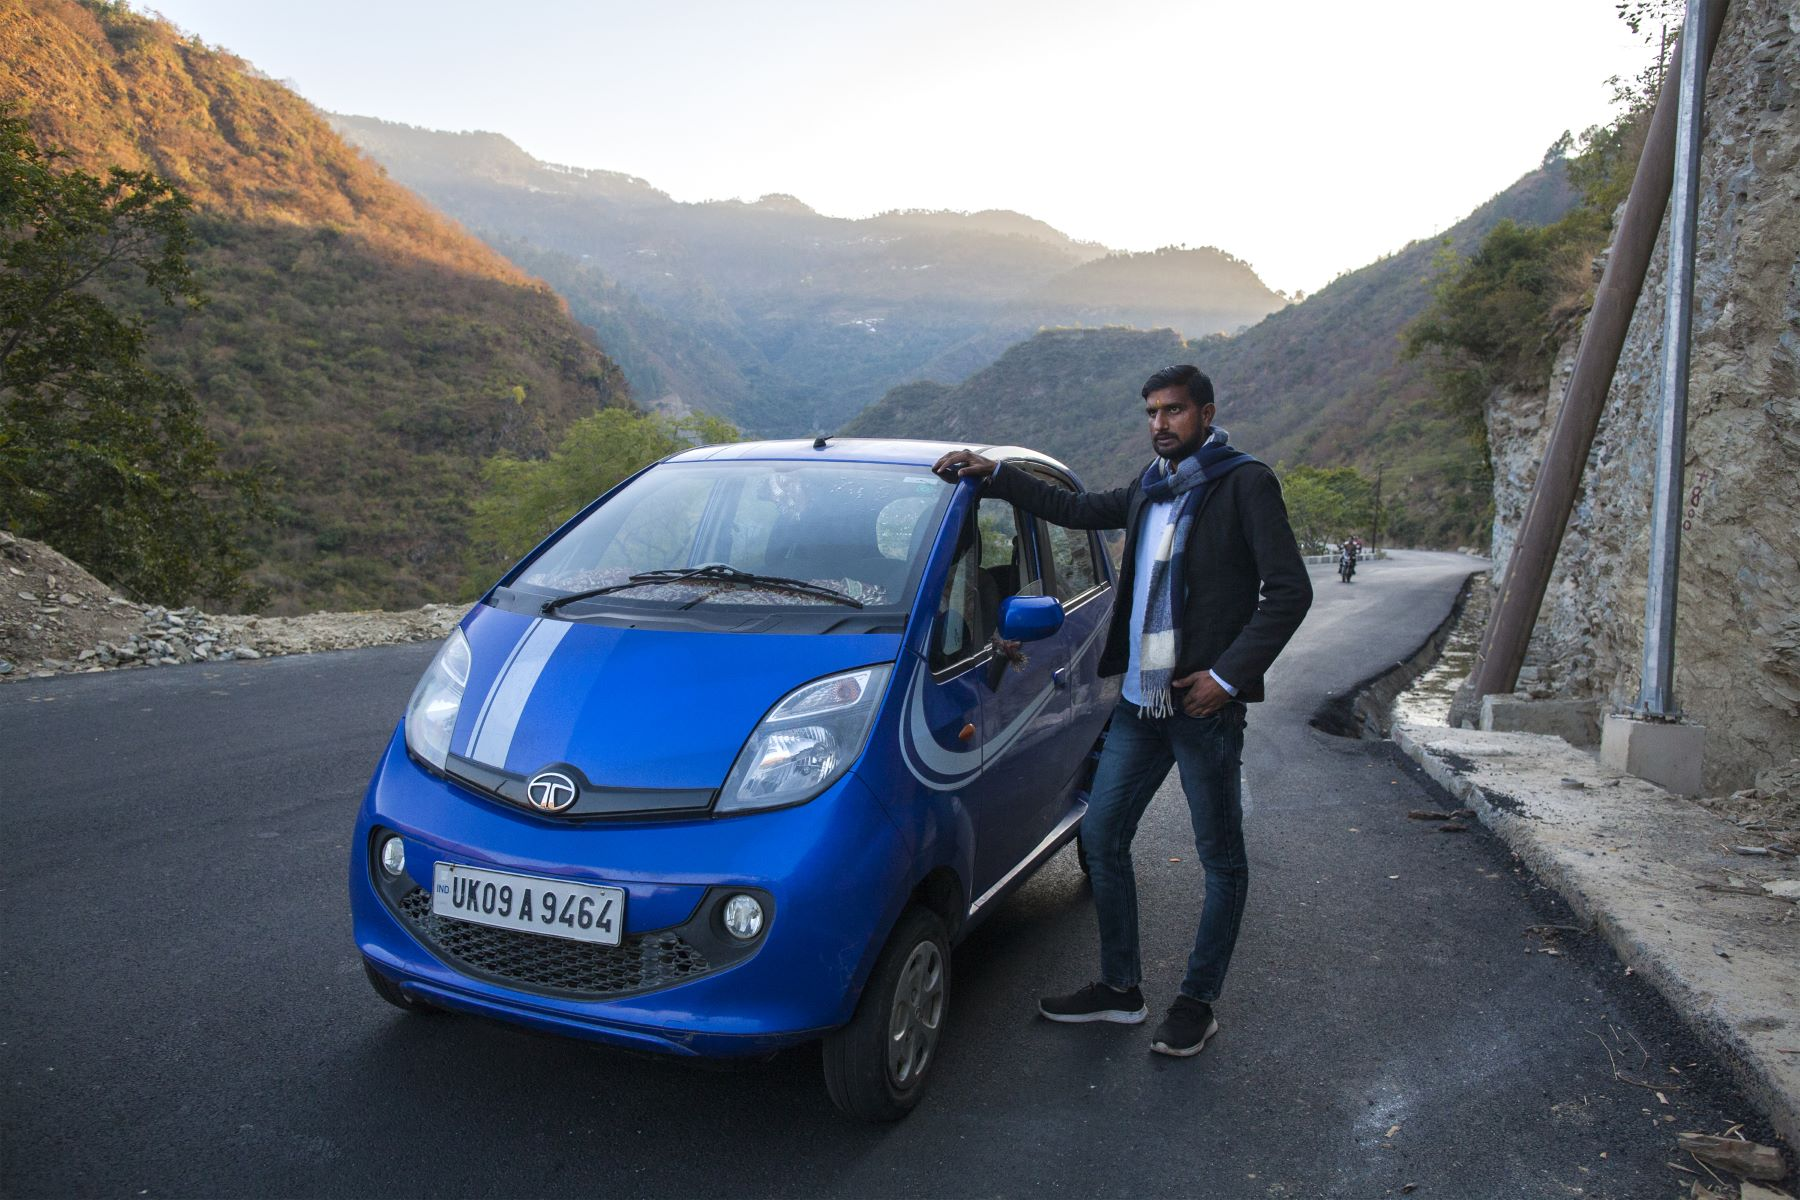 Ganesh Bhatt, a resident of the village Bhallegoan, District Tehri Garhwal stands for a portrait next to his Tata Nano car